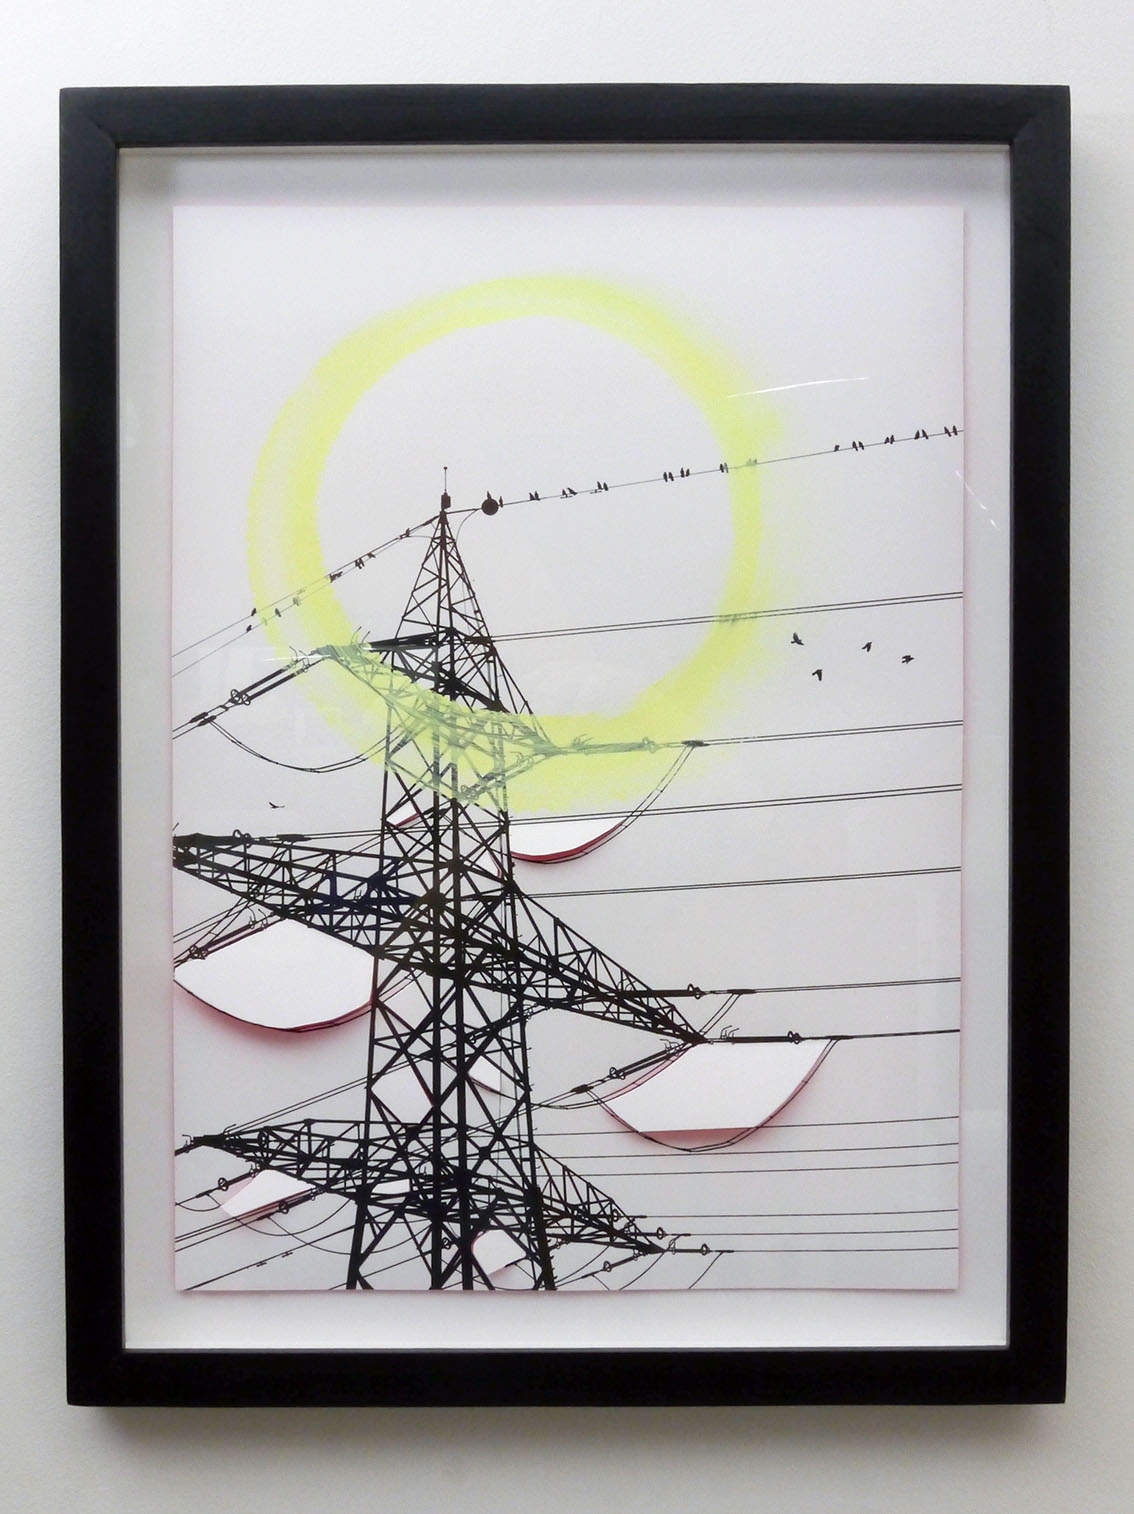 Share the Wire, screen print, 60 x 40 cm, exhibited at CSM x CMS Entangled, Four Corners Gallery, London 2017